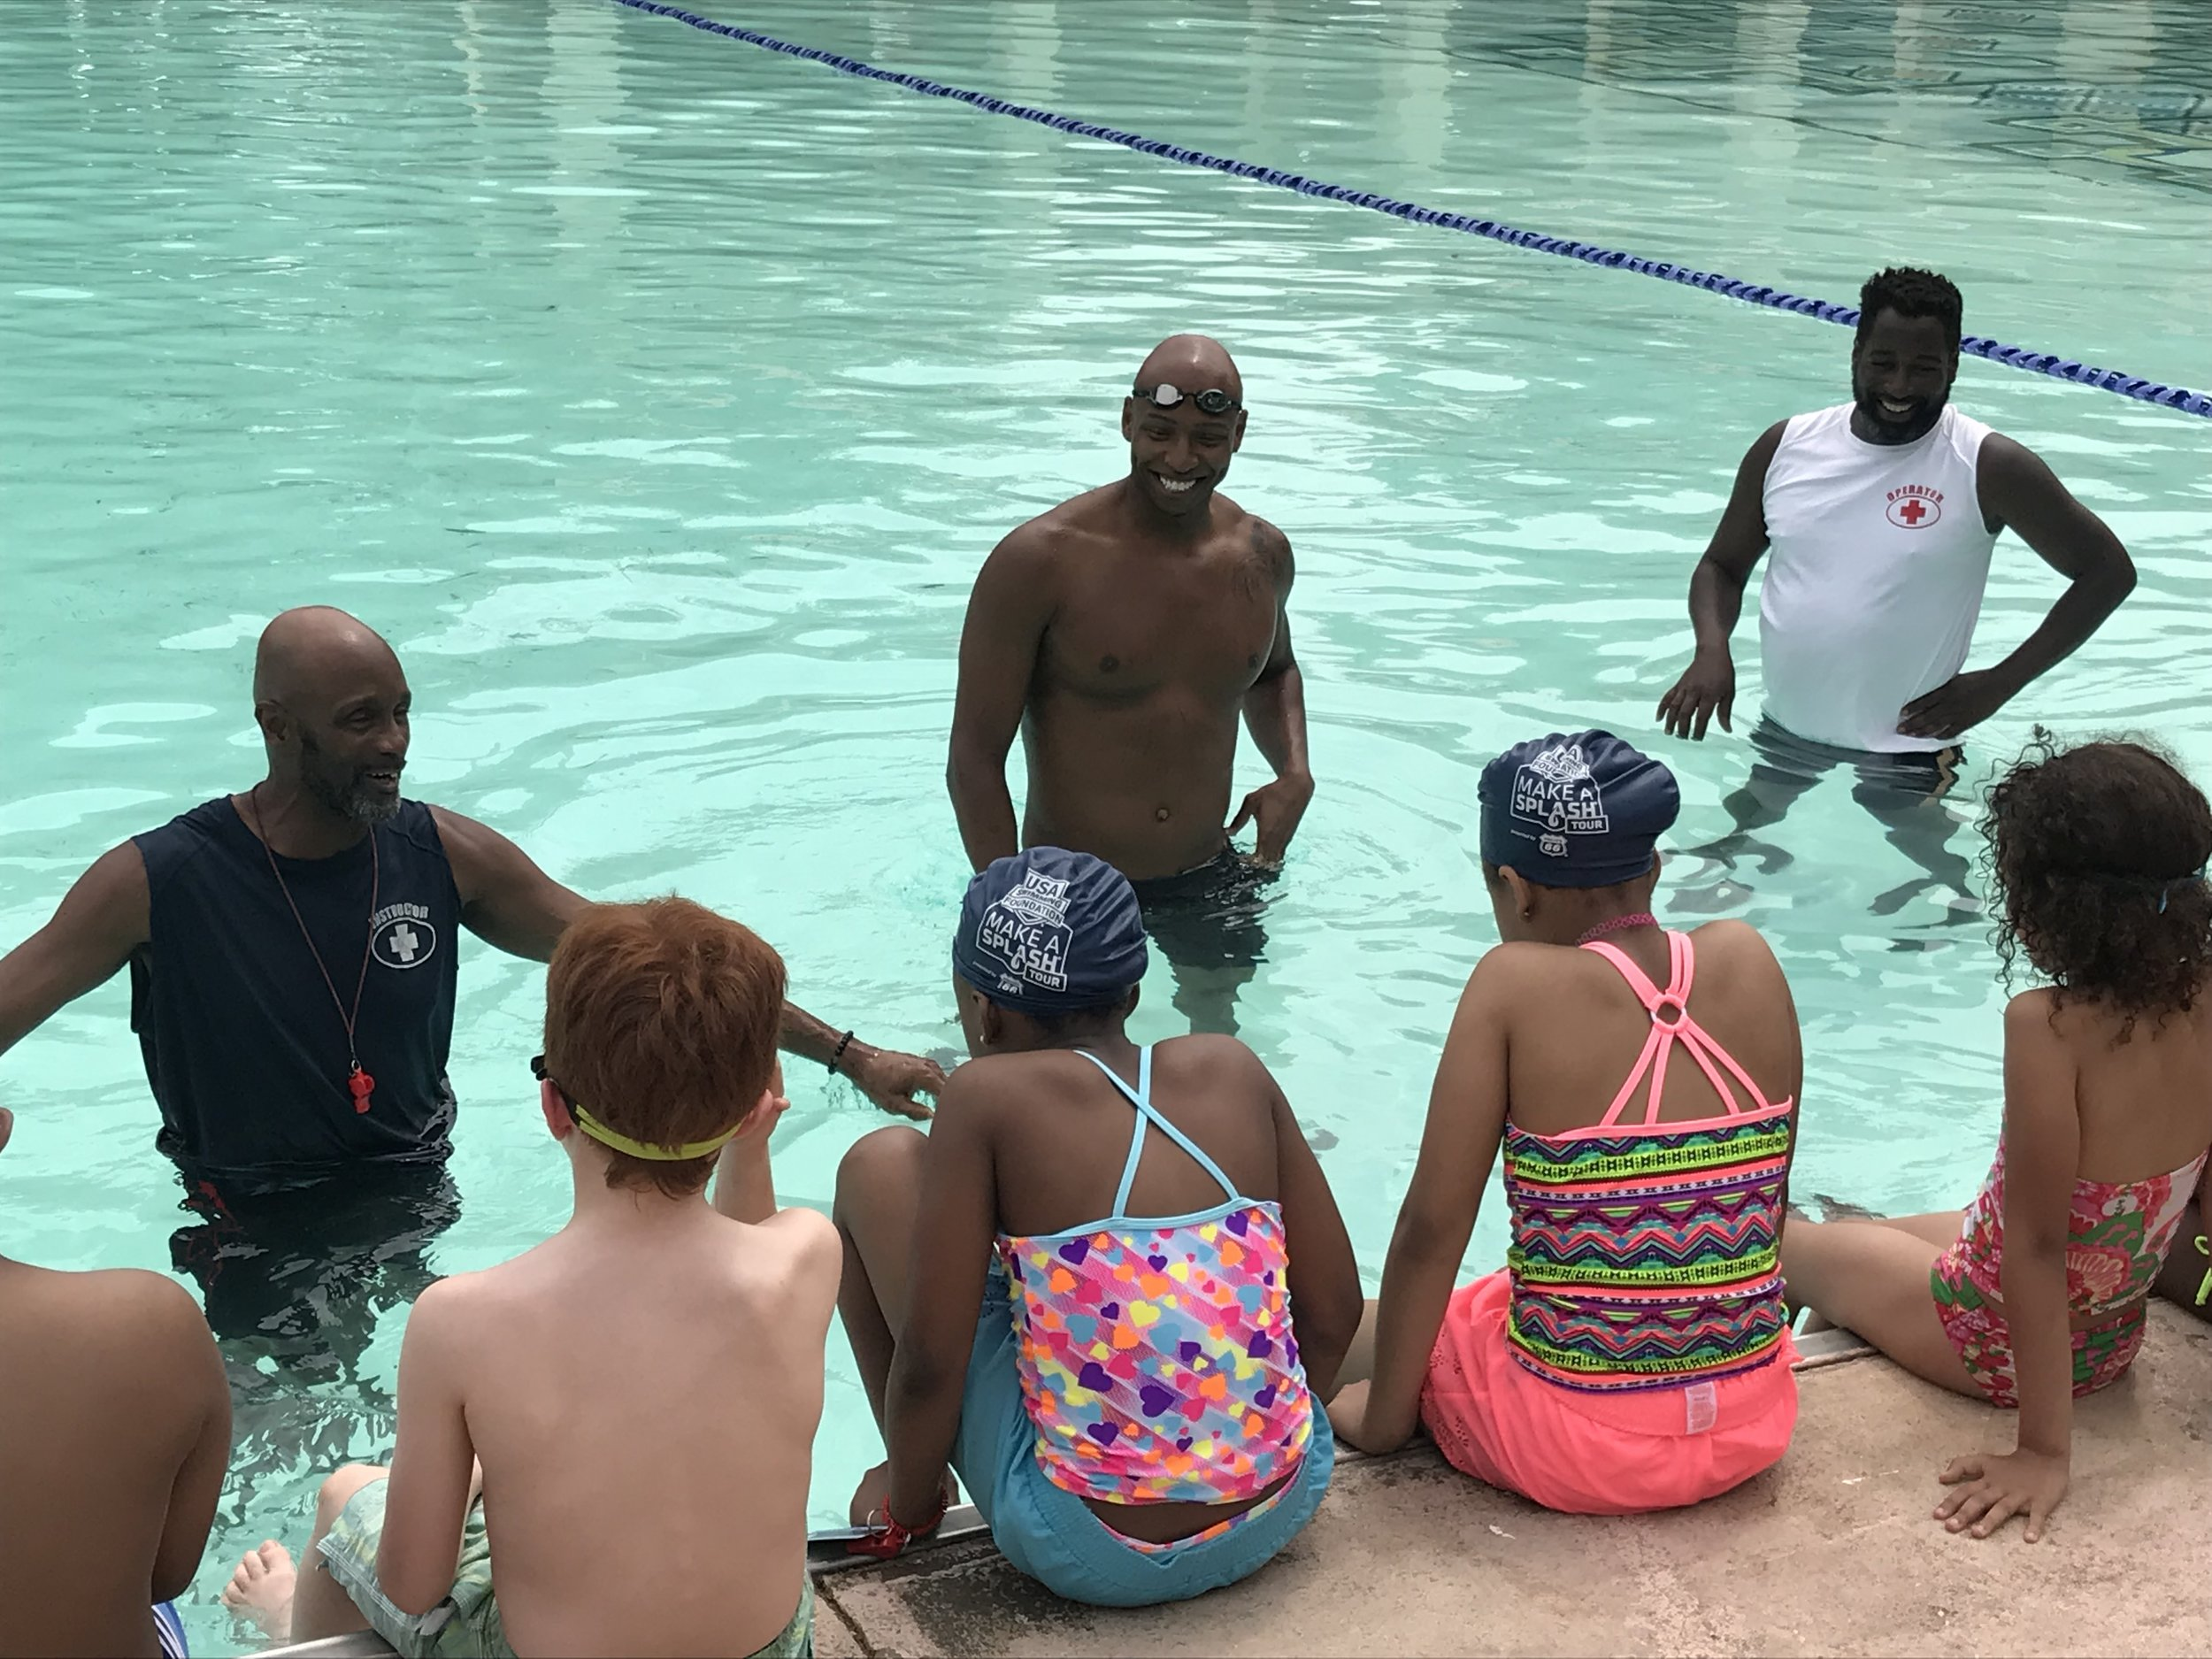 Cullen Jones (middle) assisting Baltimore Recreation and Parks staff with swim instructions. Photo by Aspen Institute Sports & Society Program